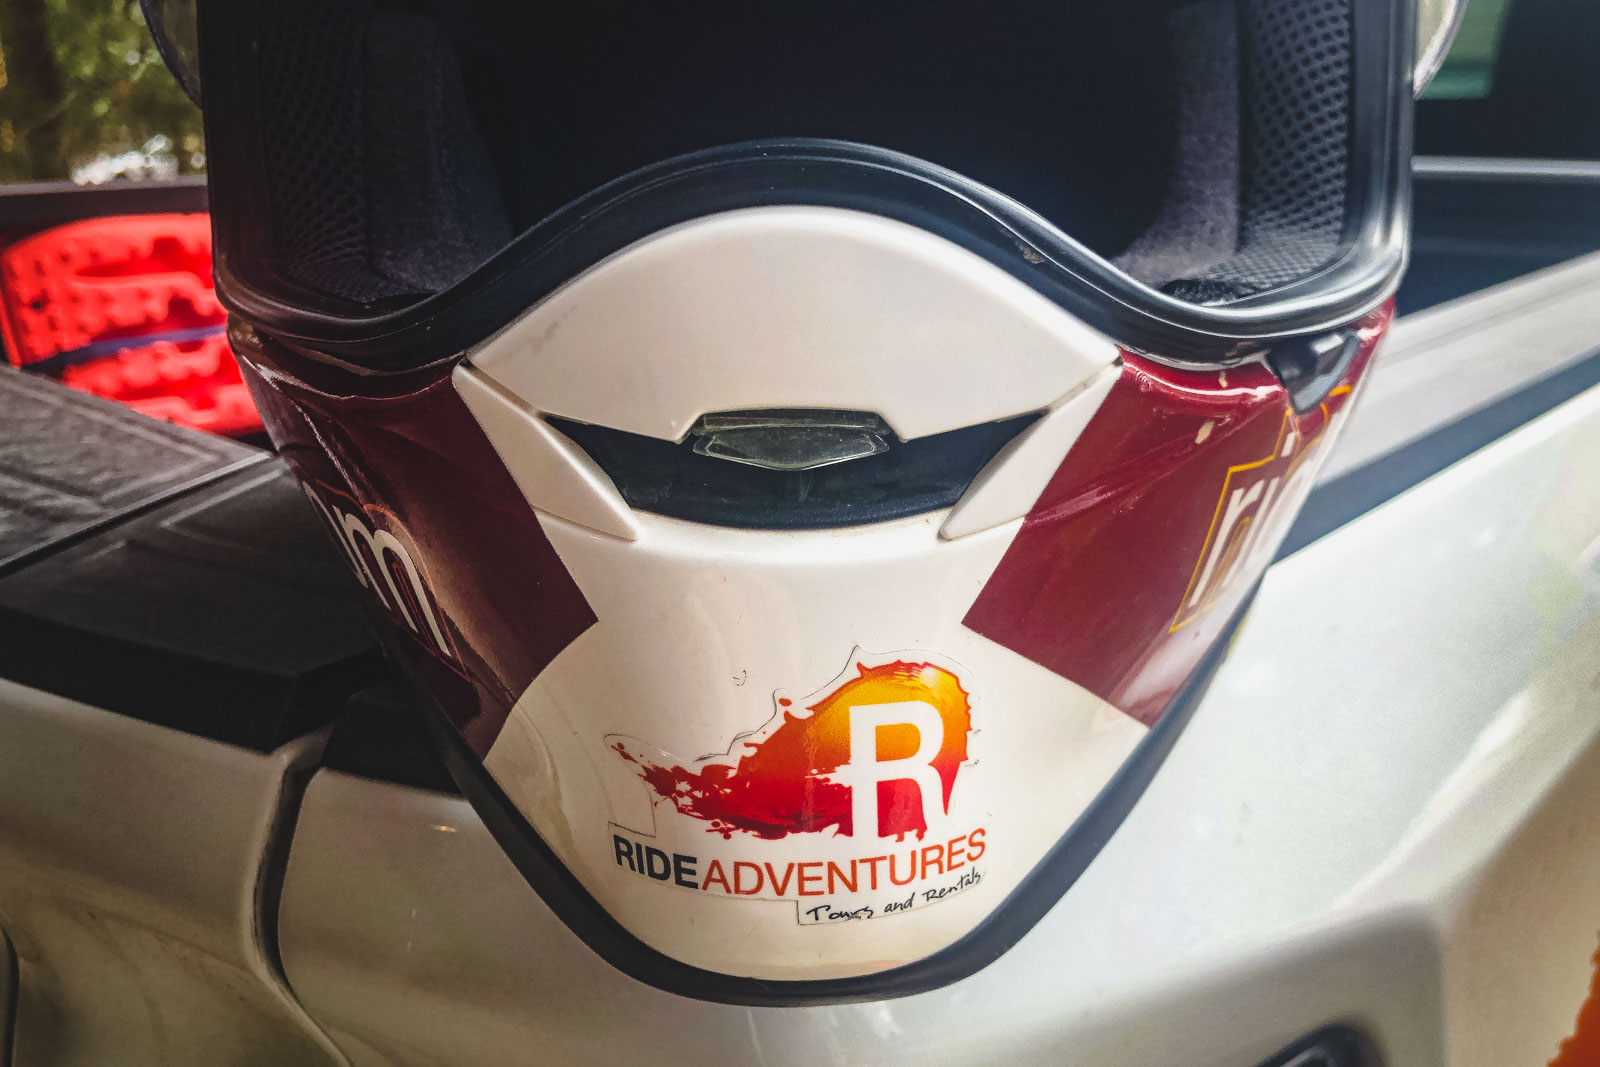 Shoei Hornets X2's front vents under the visor